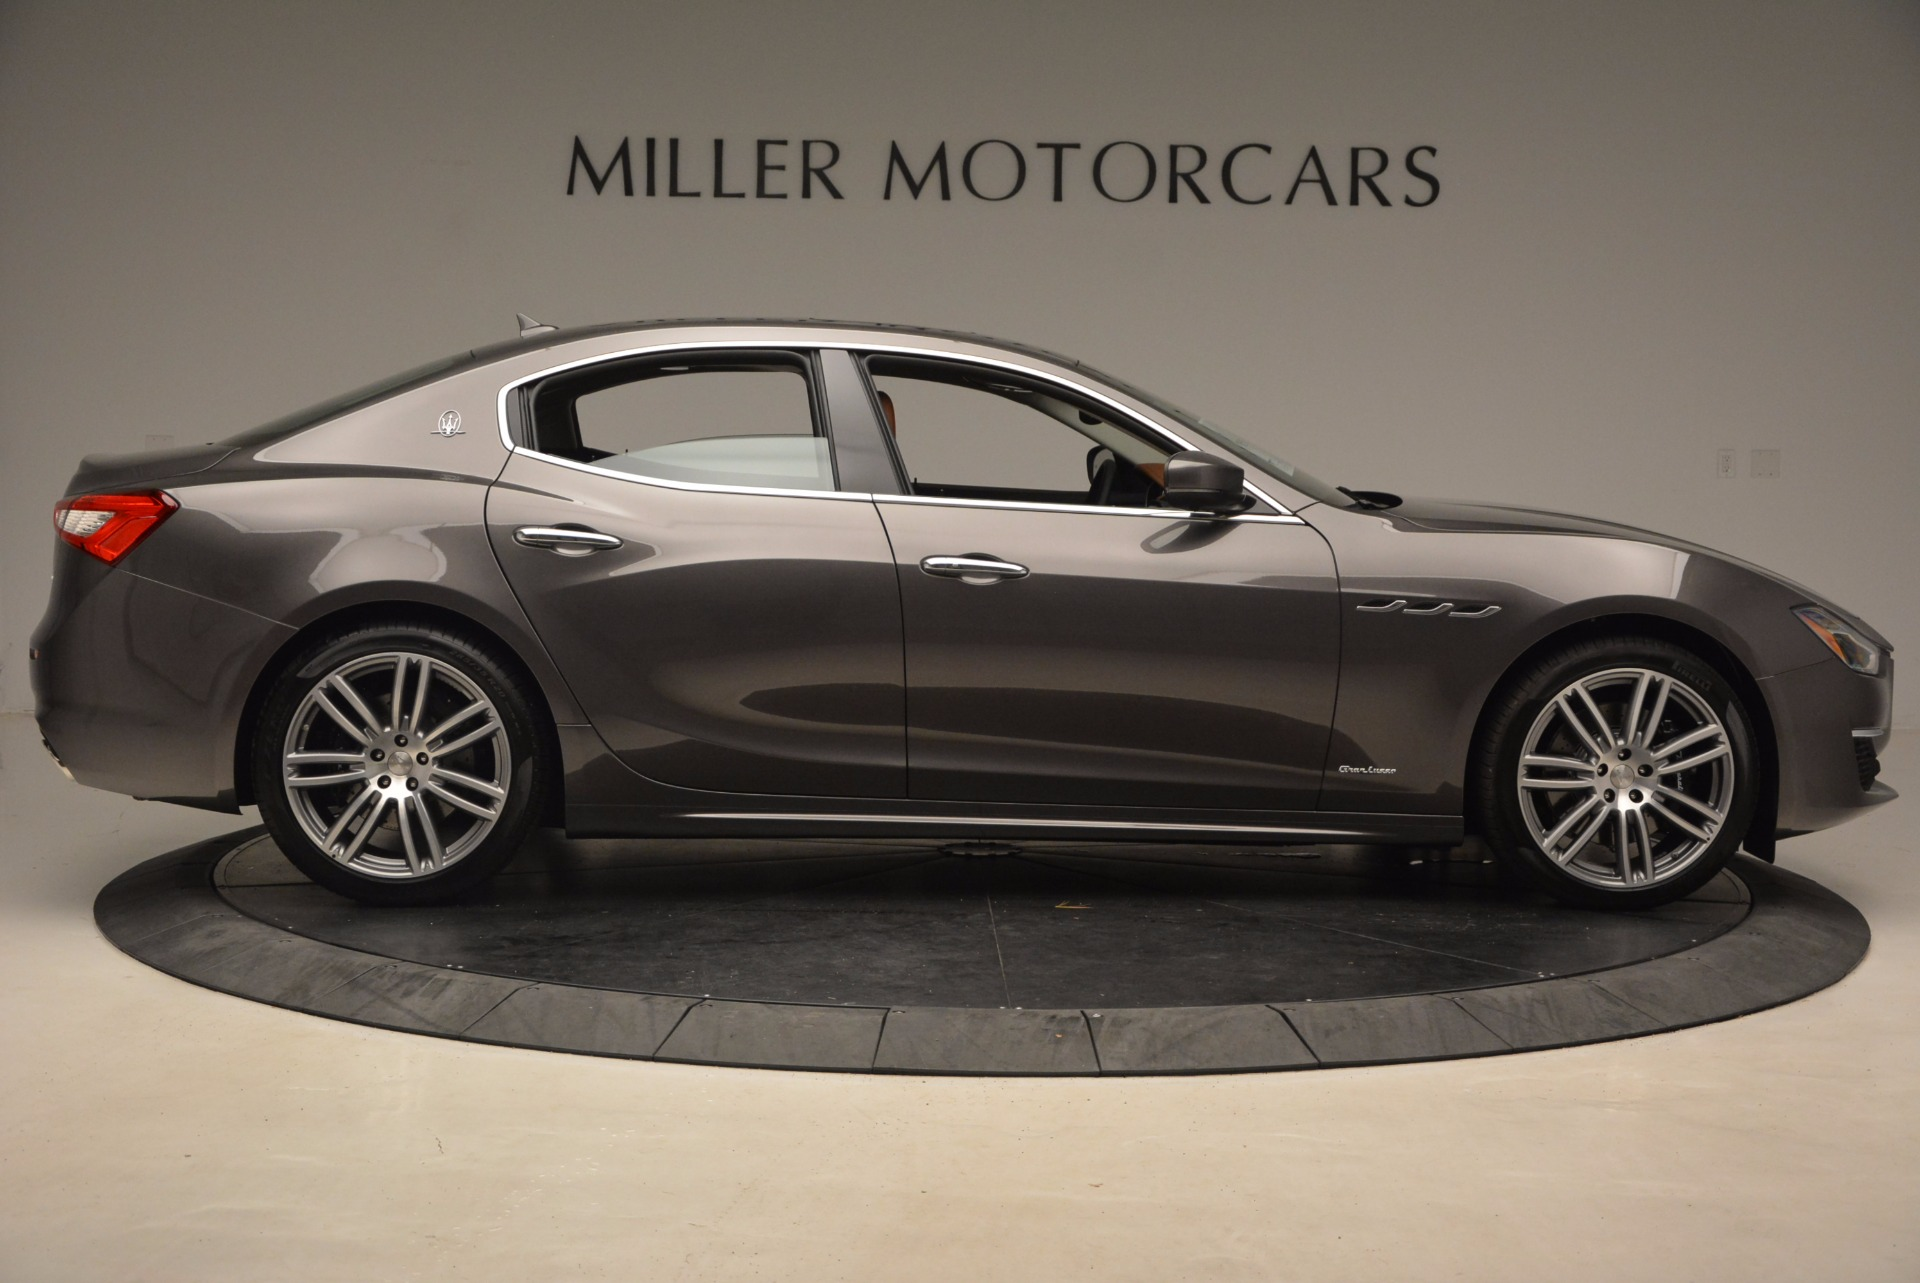 New 2018 Maserati Ghibli S Q4 GranLusso For Sale In Greenwich, CT 1896_p9